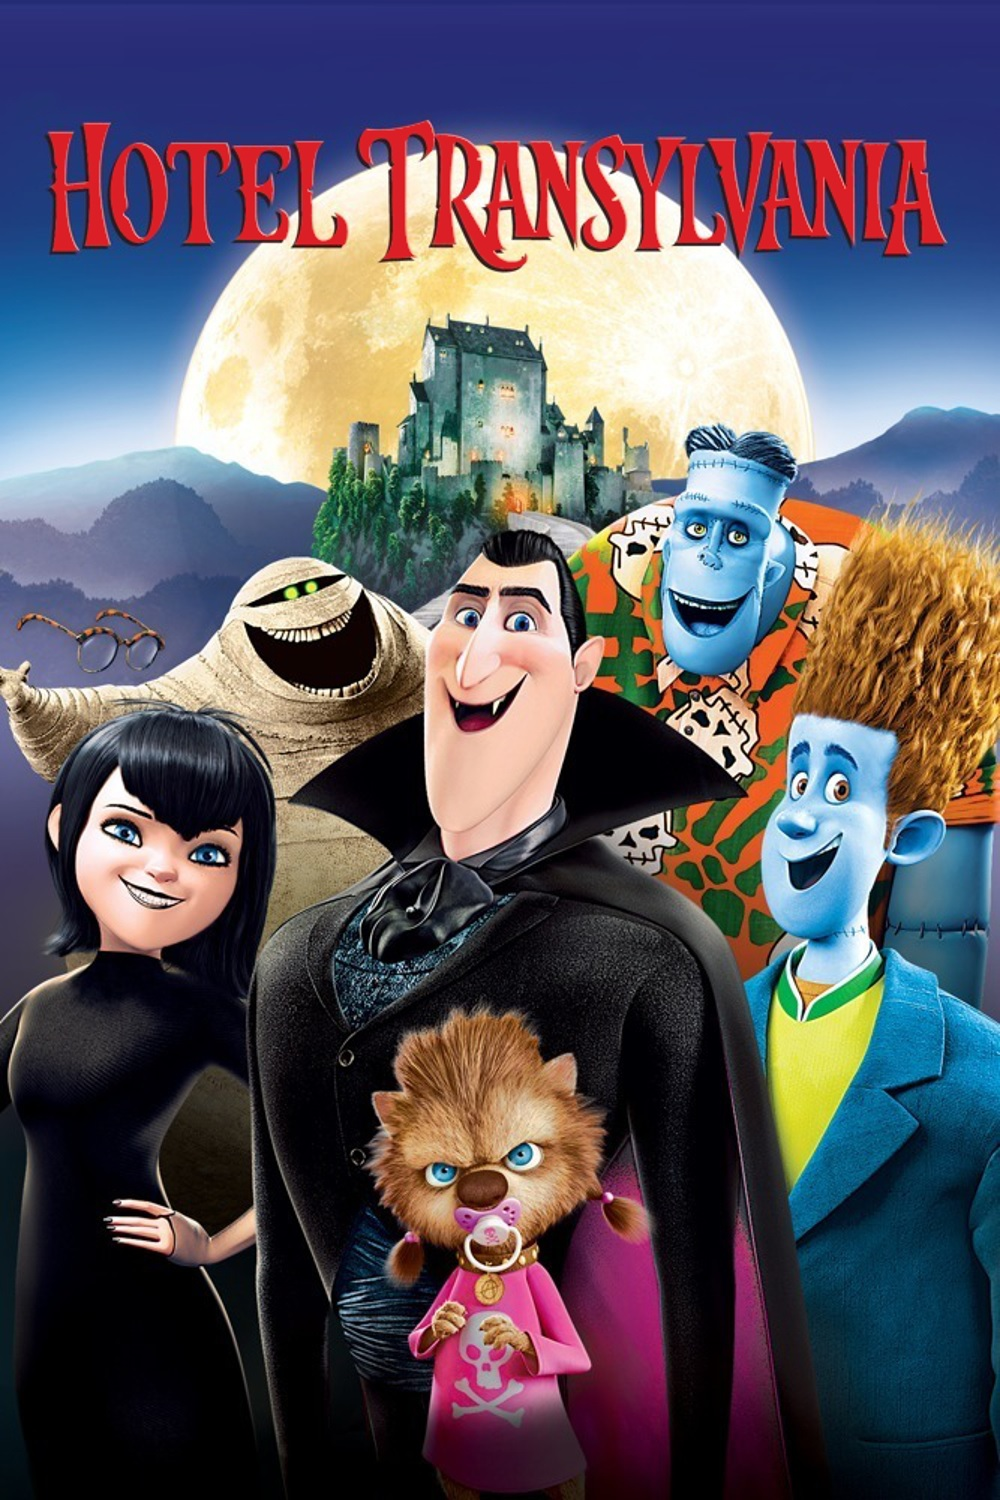 Image result for hotel transylvania movie poster